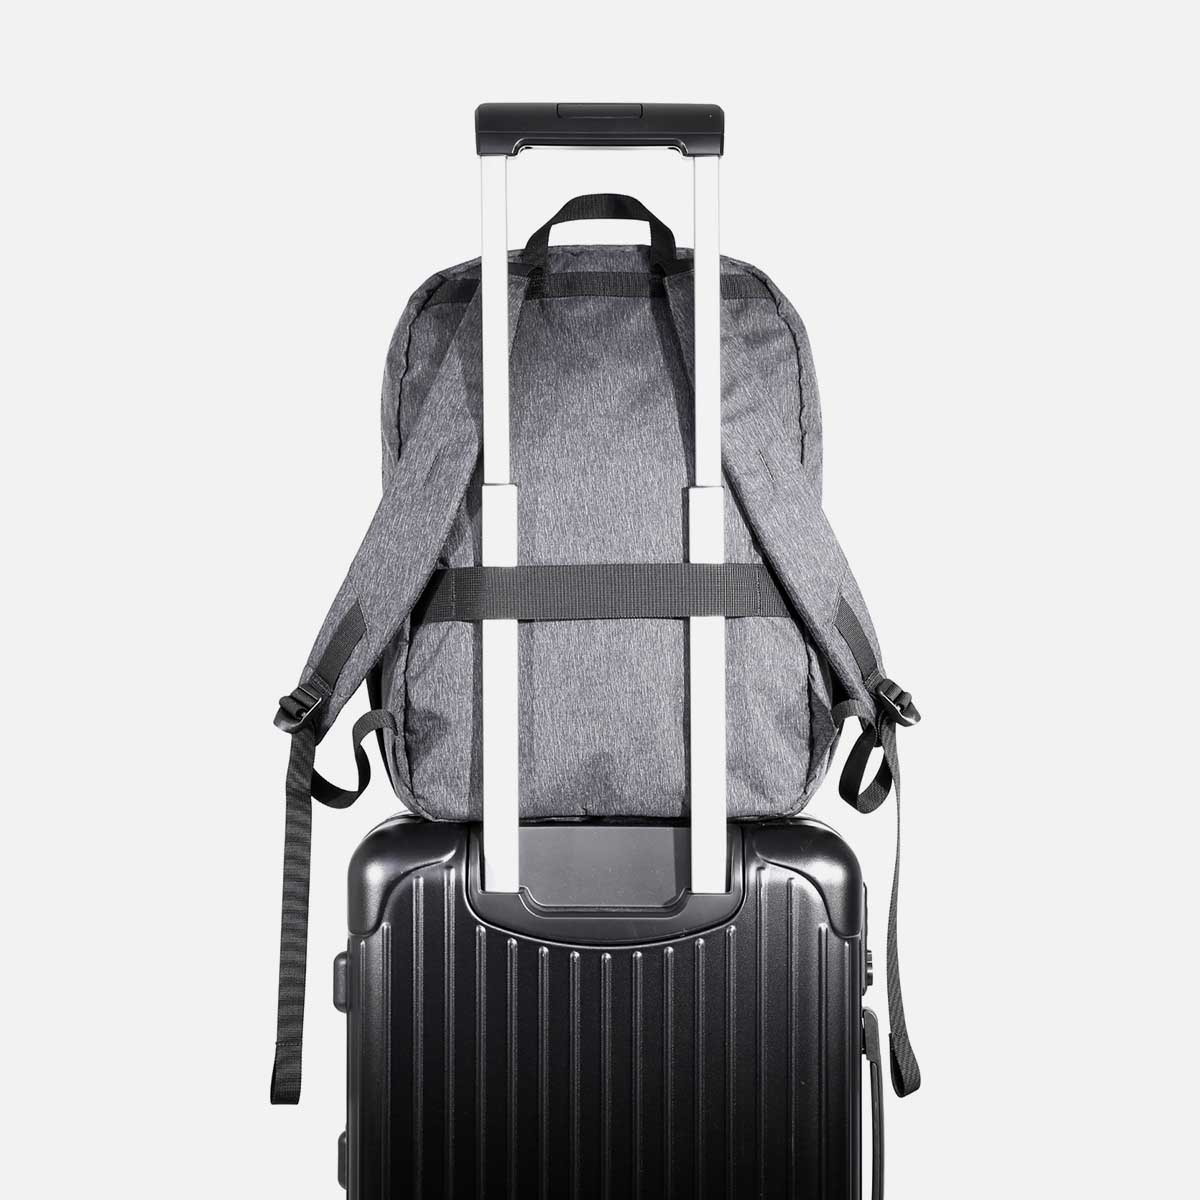 Luggage pass-through for convenient carry.